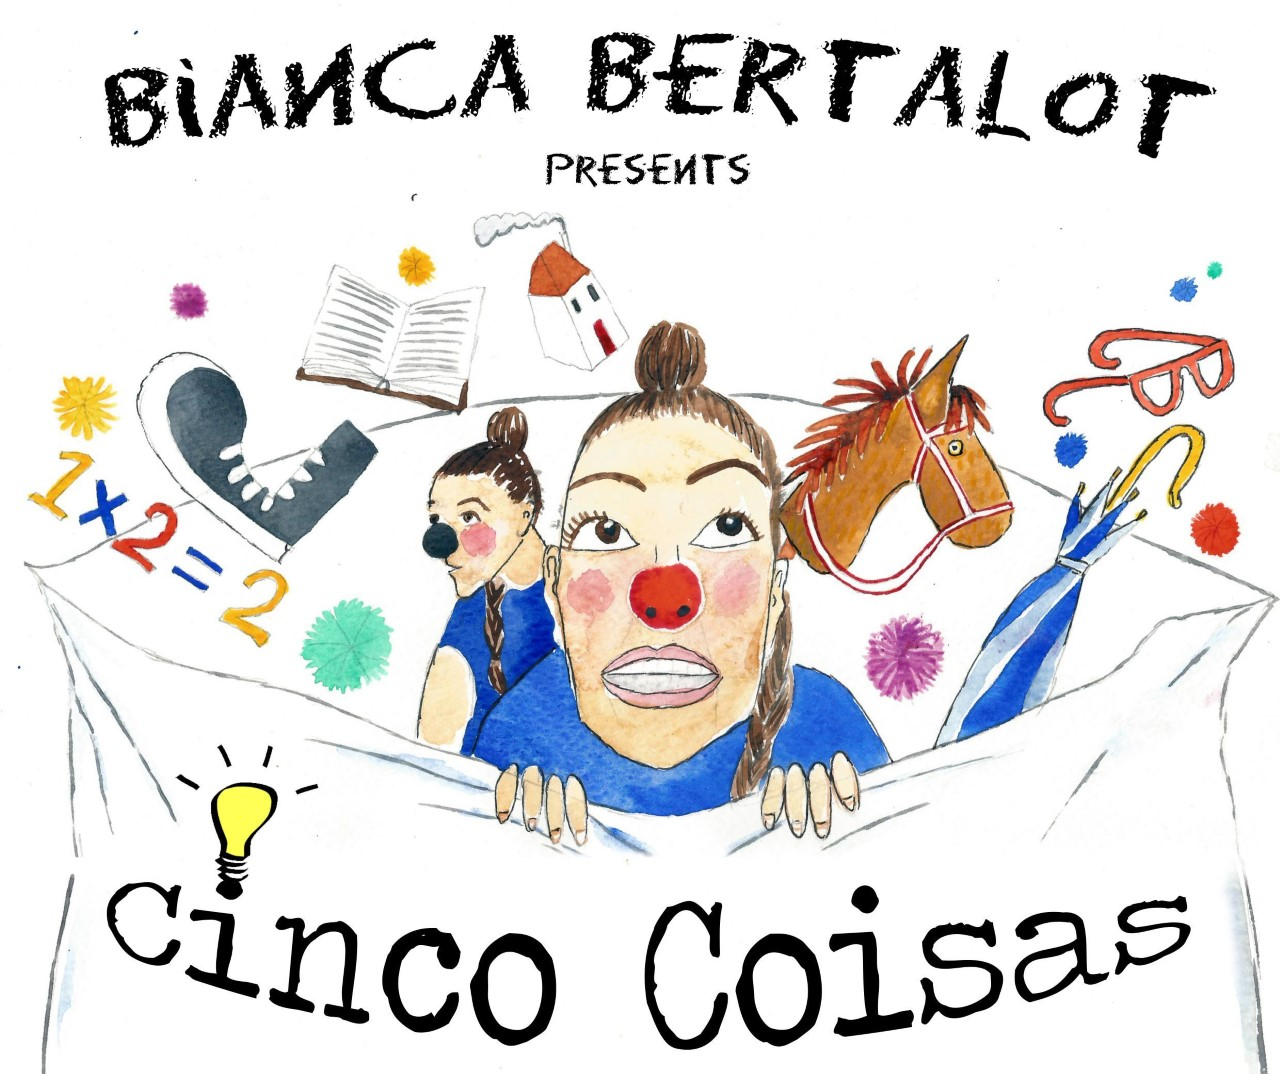 BIANCA BERTALOT PRESENTS CINCO COISAS  | PPERFORMED AT SALFORD ARTS THEATRE | PART OF THE GM FRINGE